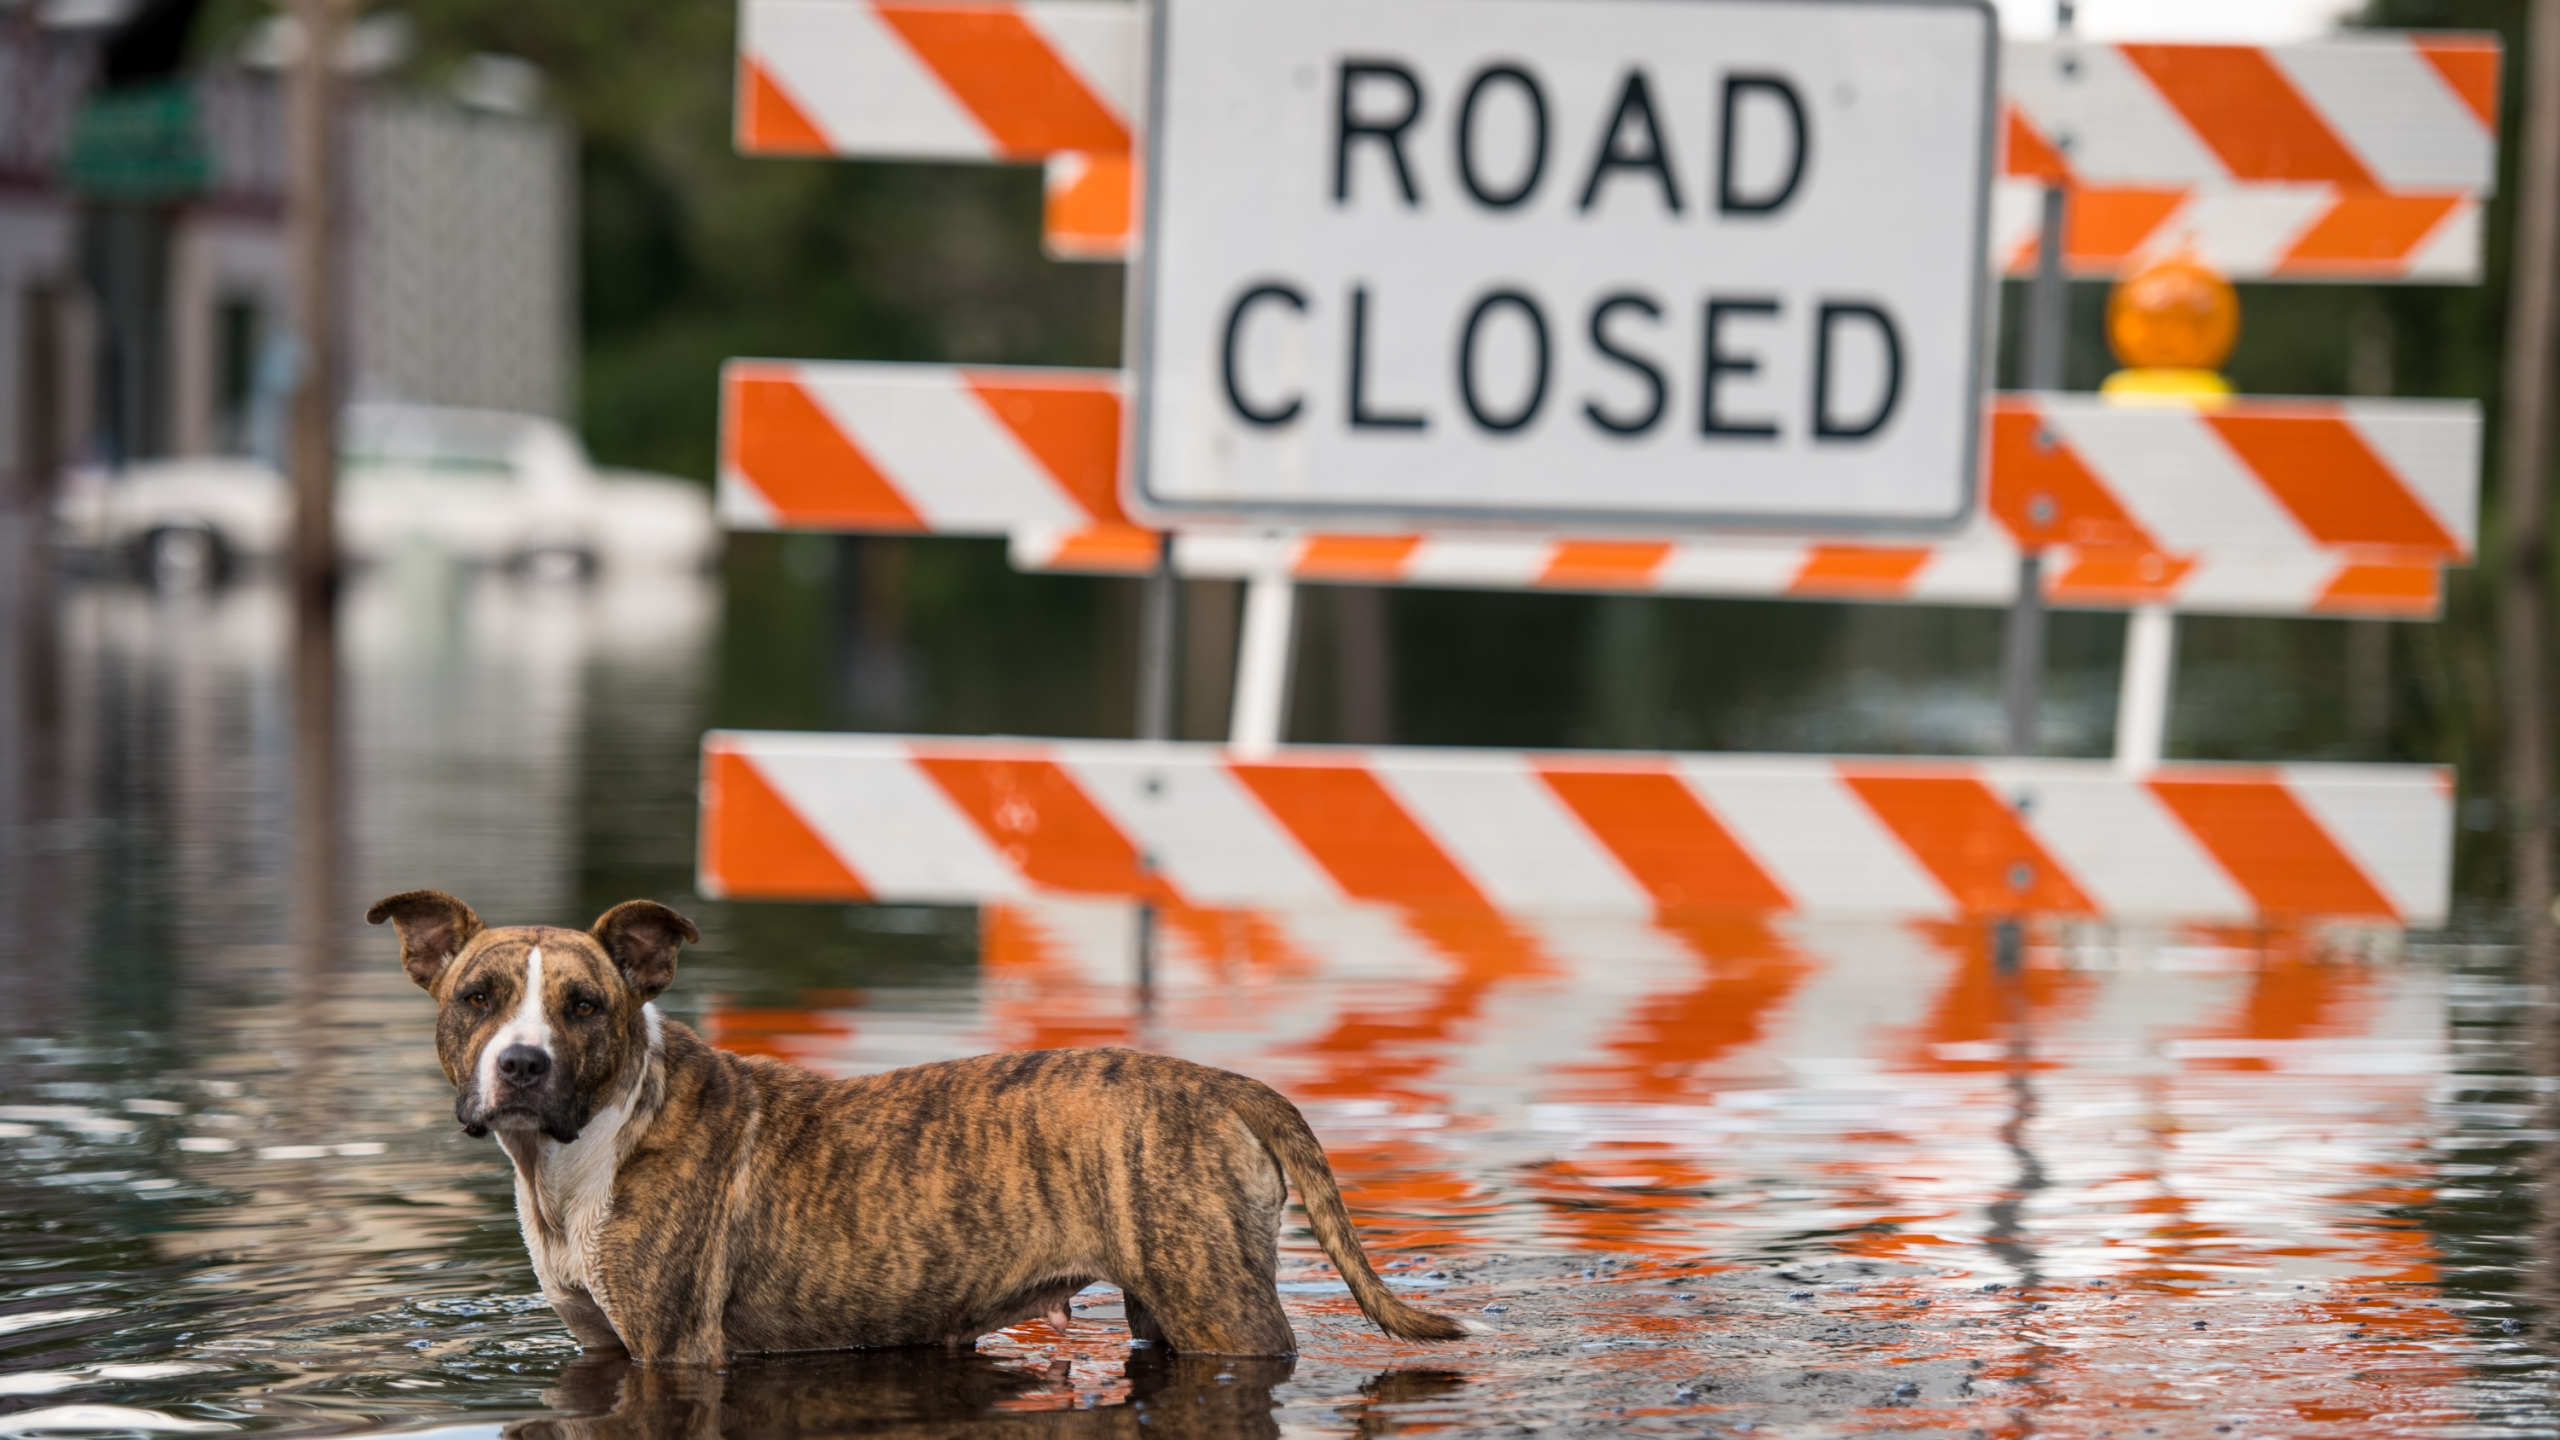 A dog stands in floodwaters from the Waccamaw River caused by Hurricane Florence on Sept. 26, 2018 in Bucksport, South Carolina. (Credit: Sean Rayford/Getty Images)